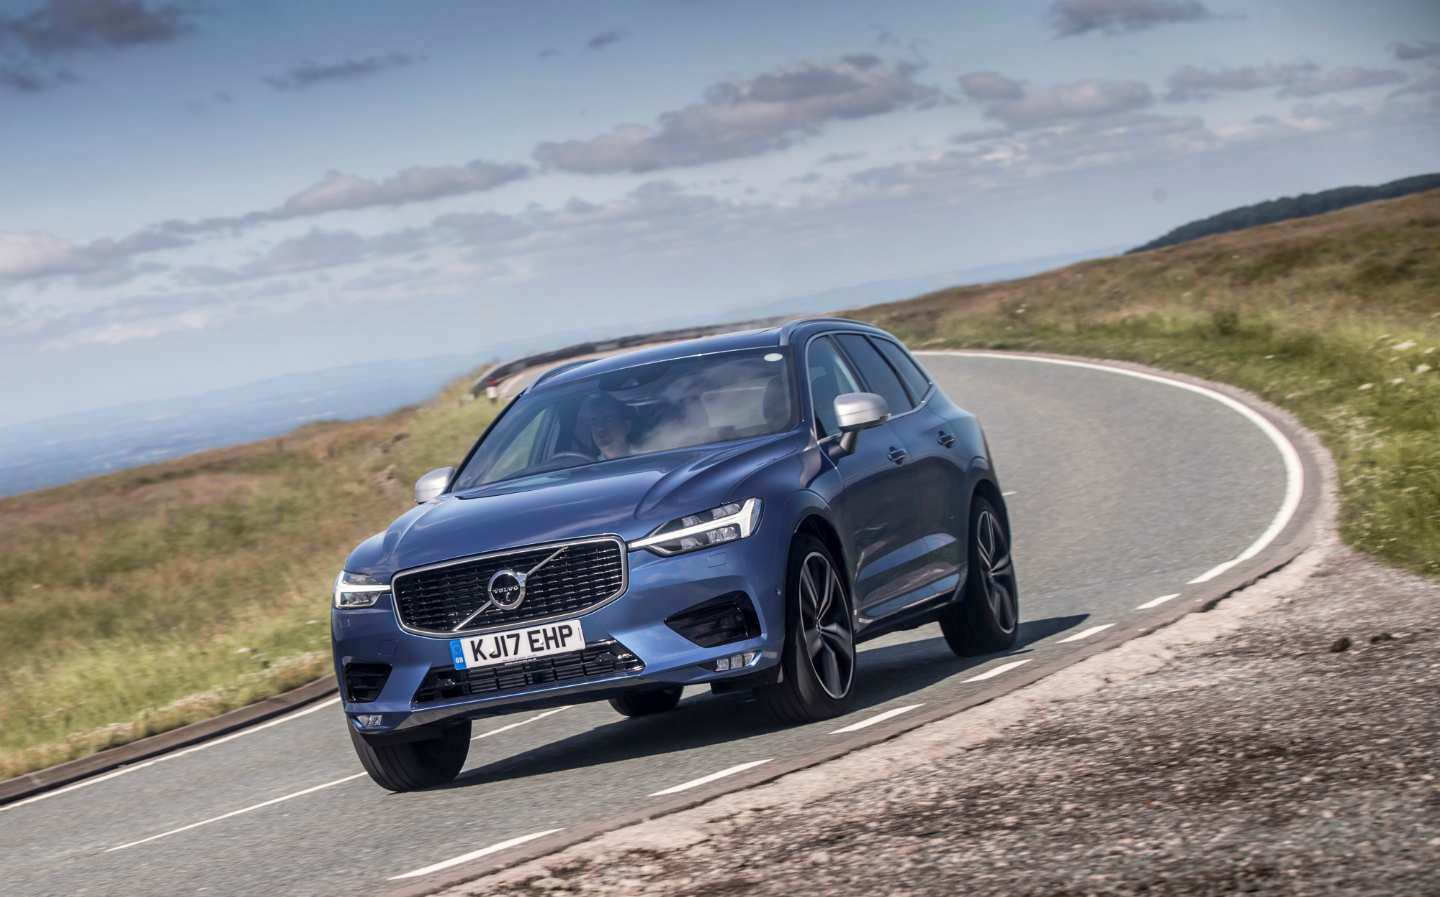 50 Best Volvo Speed Limit 2020 Rumors